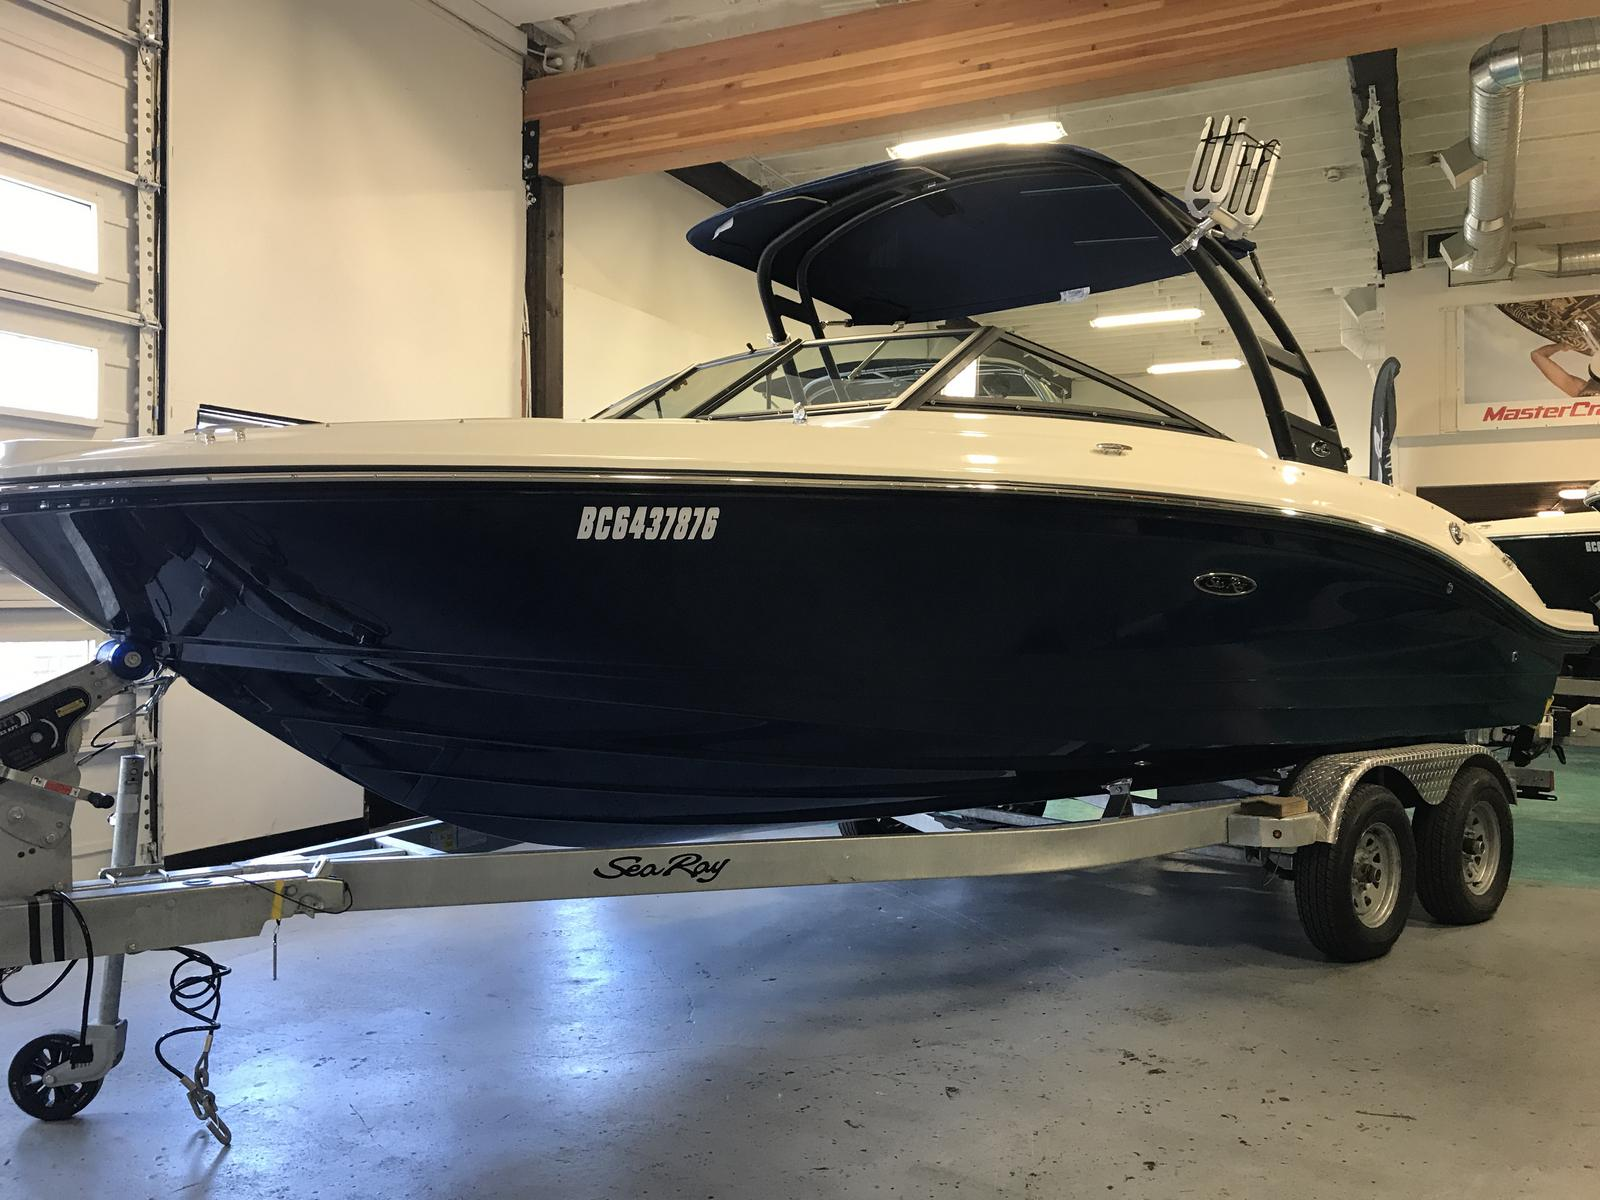 2019 Sea Ray boat for sale, model of the boat is SPX 210 & Image # 1 of 12